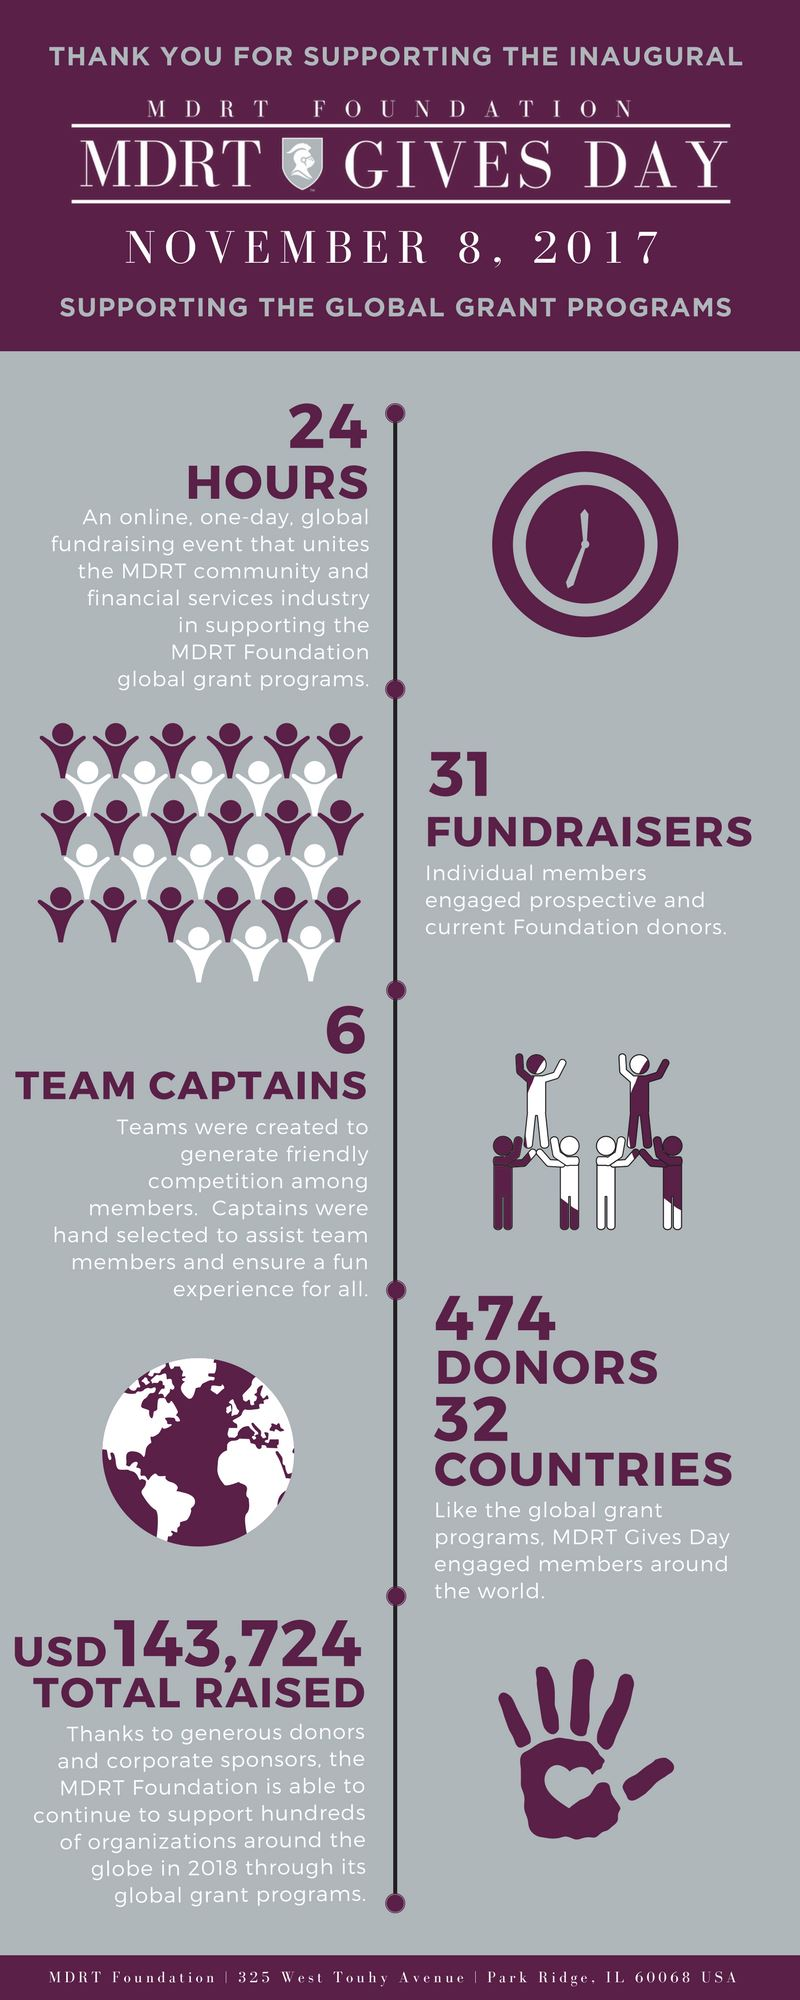 MDRT GIVES DAY INFOGRAPHIC_FINAL